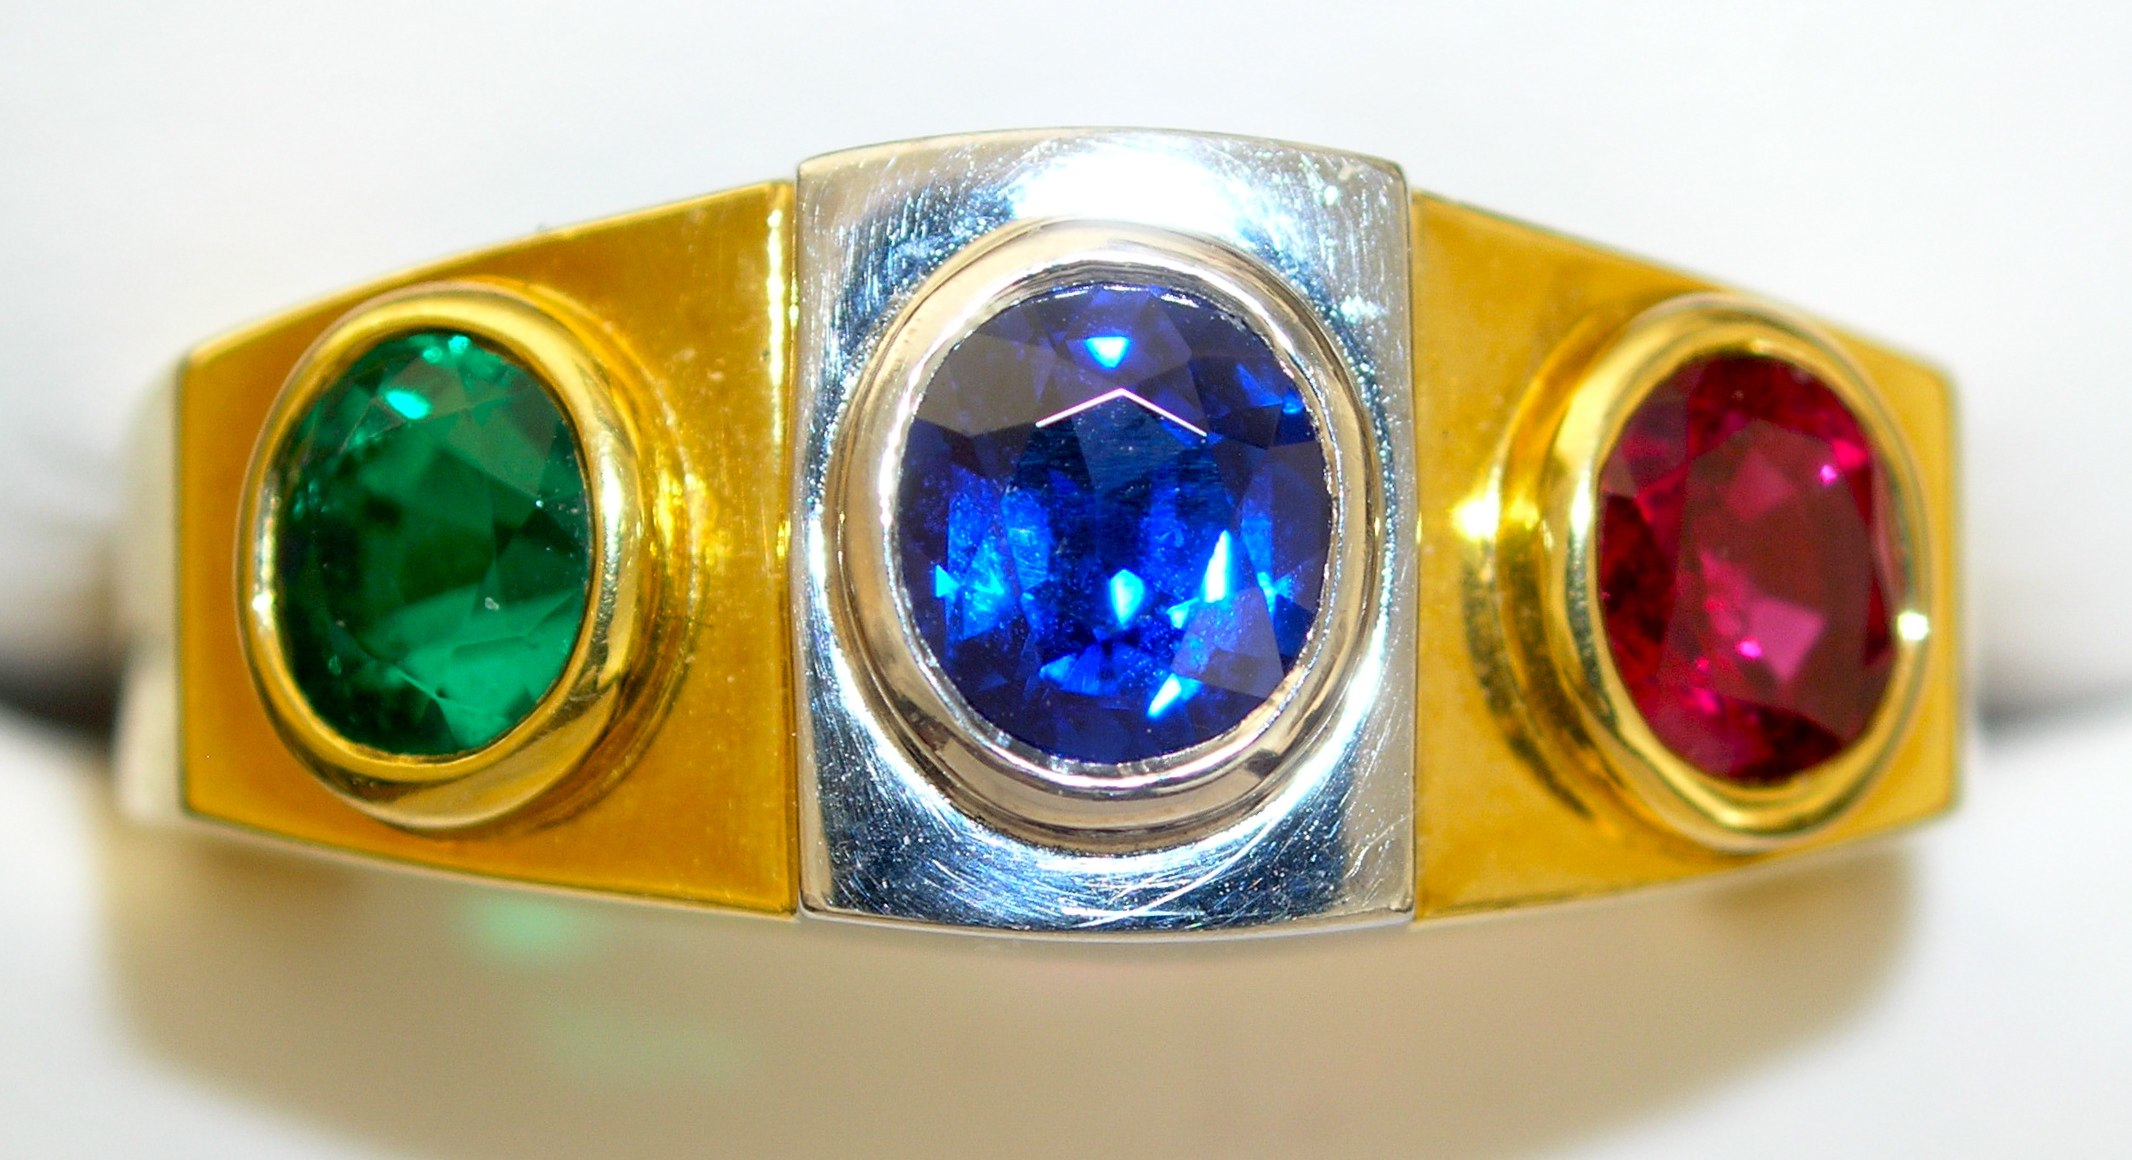 """The late master cutter & gem trader Reginald Miller wore this """"trip ring"""" to serve as his color guide on his trips to the world's gem producing capitals from 1951-1988. This Colombian emerald, Burma sapphire, and Burma ruby served as his benchmark for the finest."""